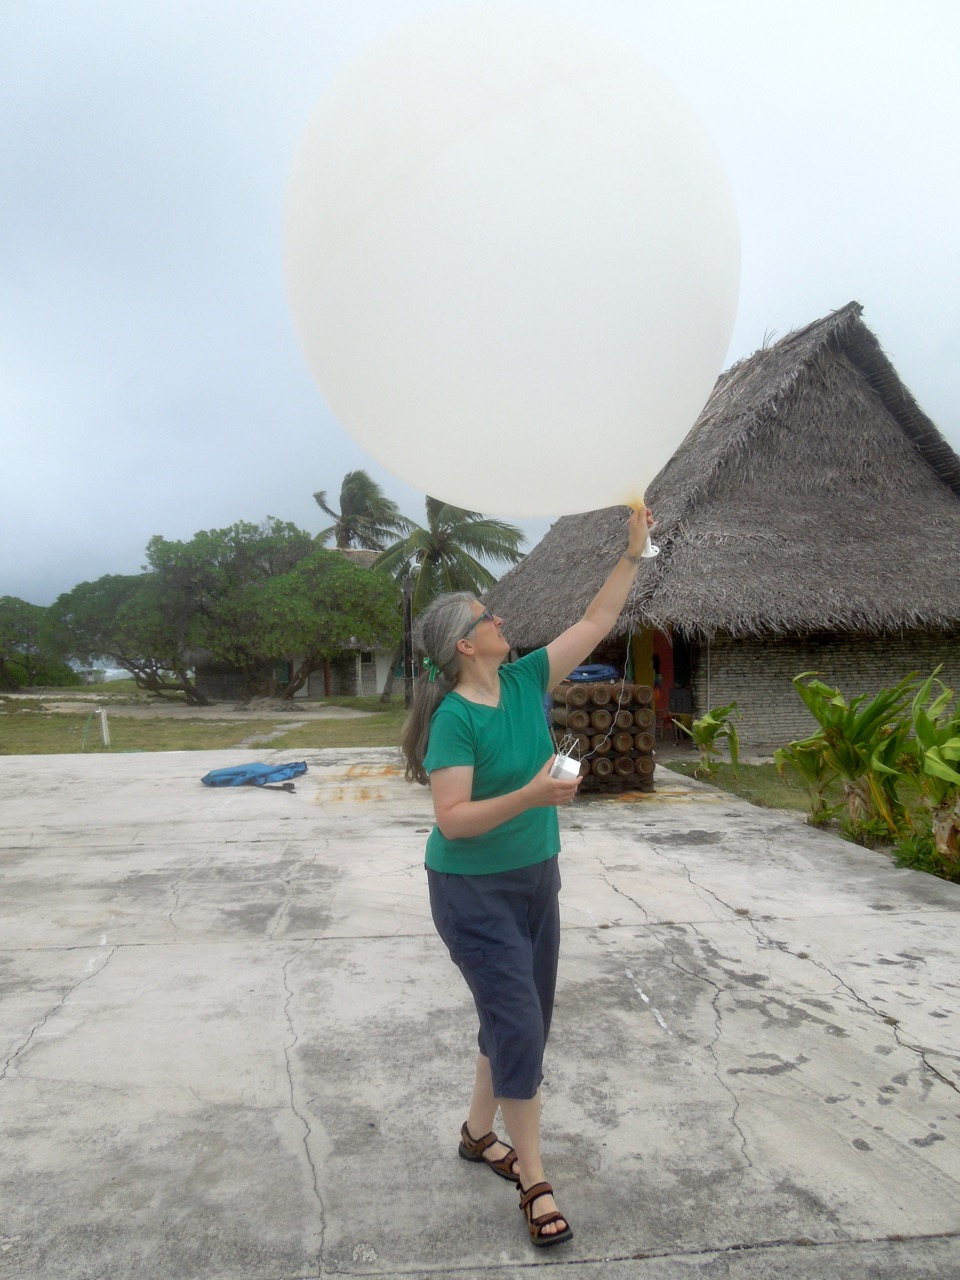 Kiritimati Island balloon launch, March 2016 during ENRR